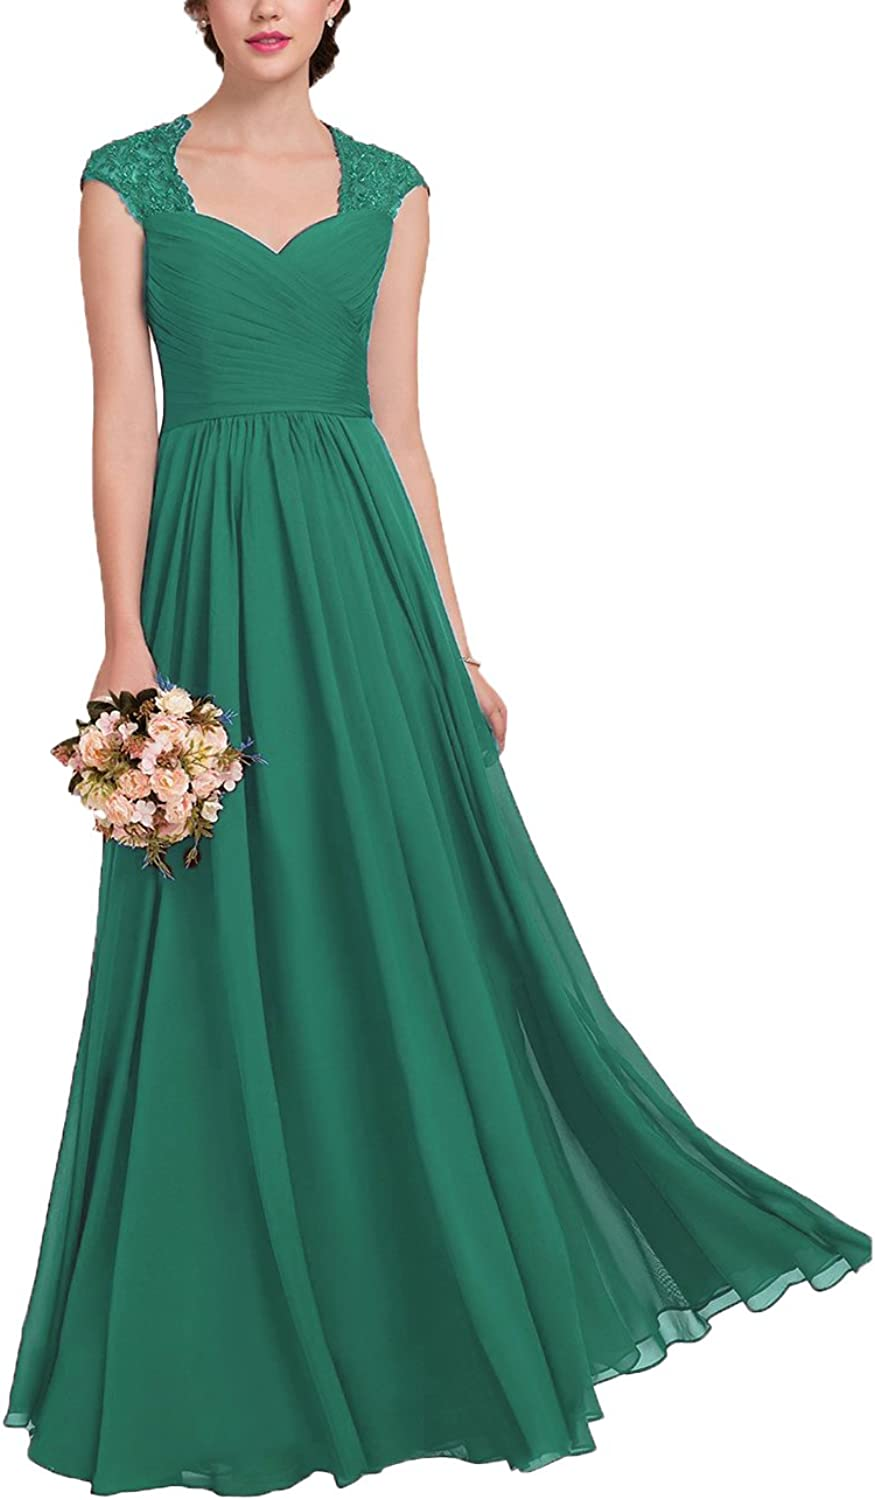 Dreagel Women's Bridesmaid Dresses Long Beaded Prom Dress Pleated Evening Gowns